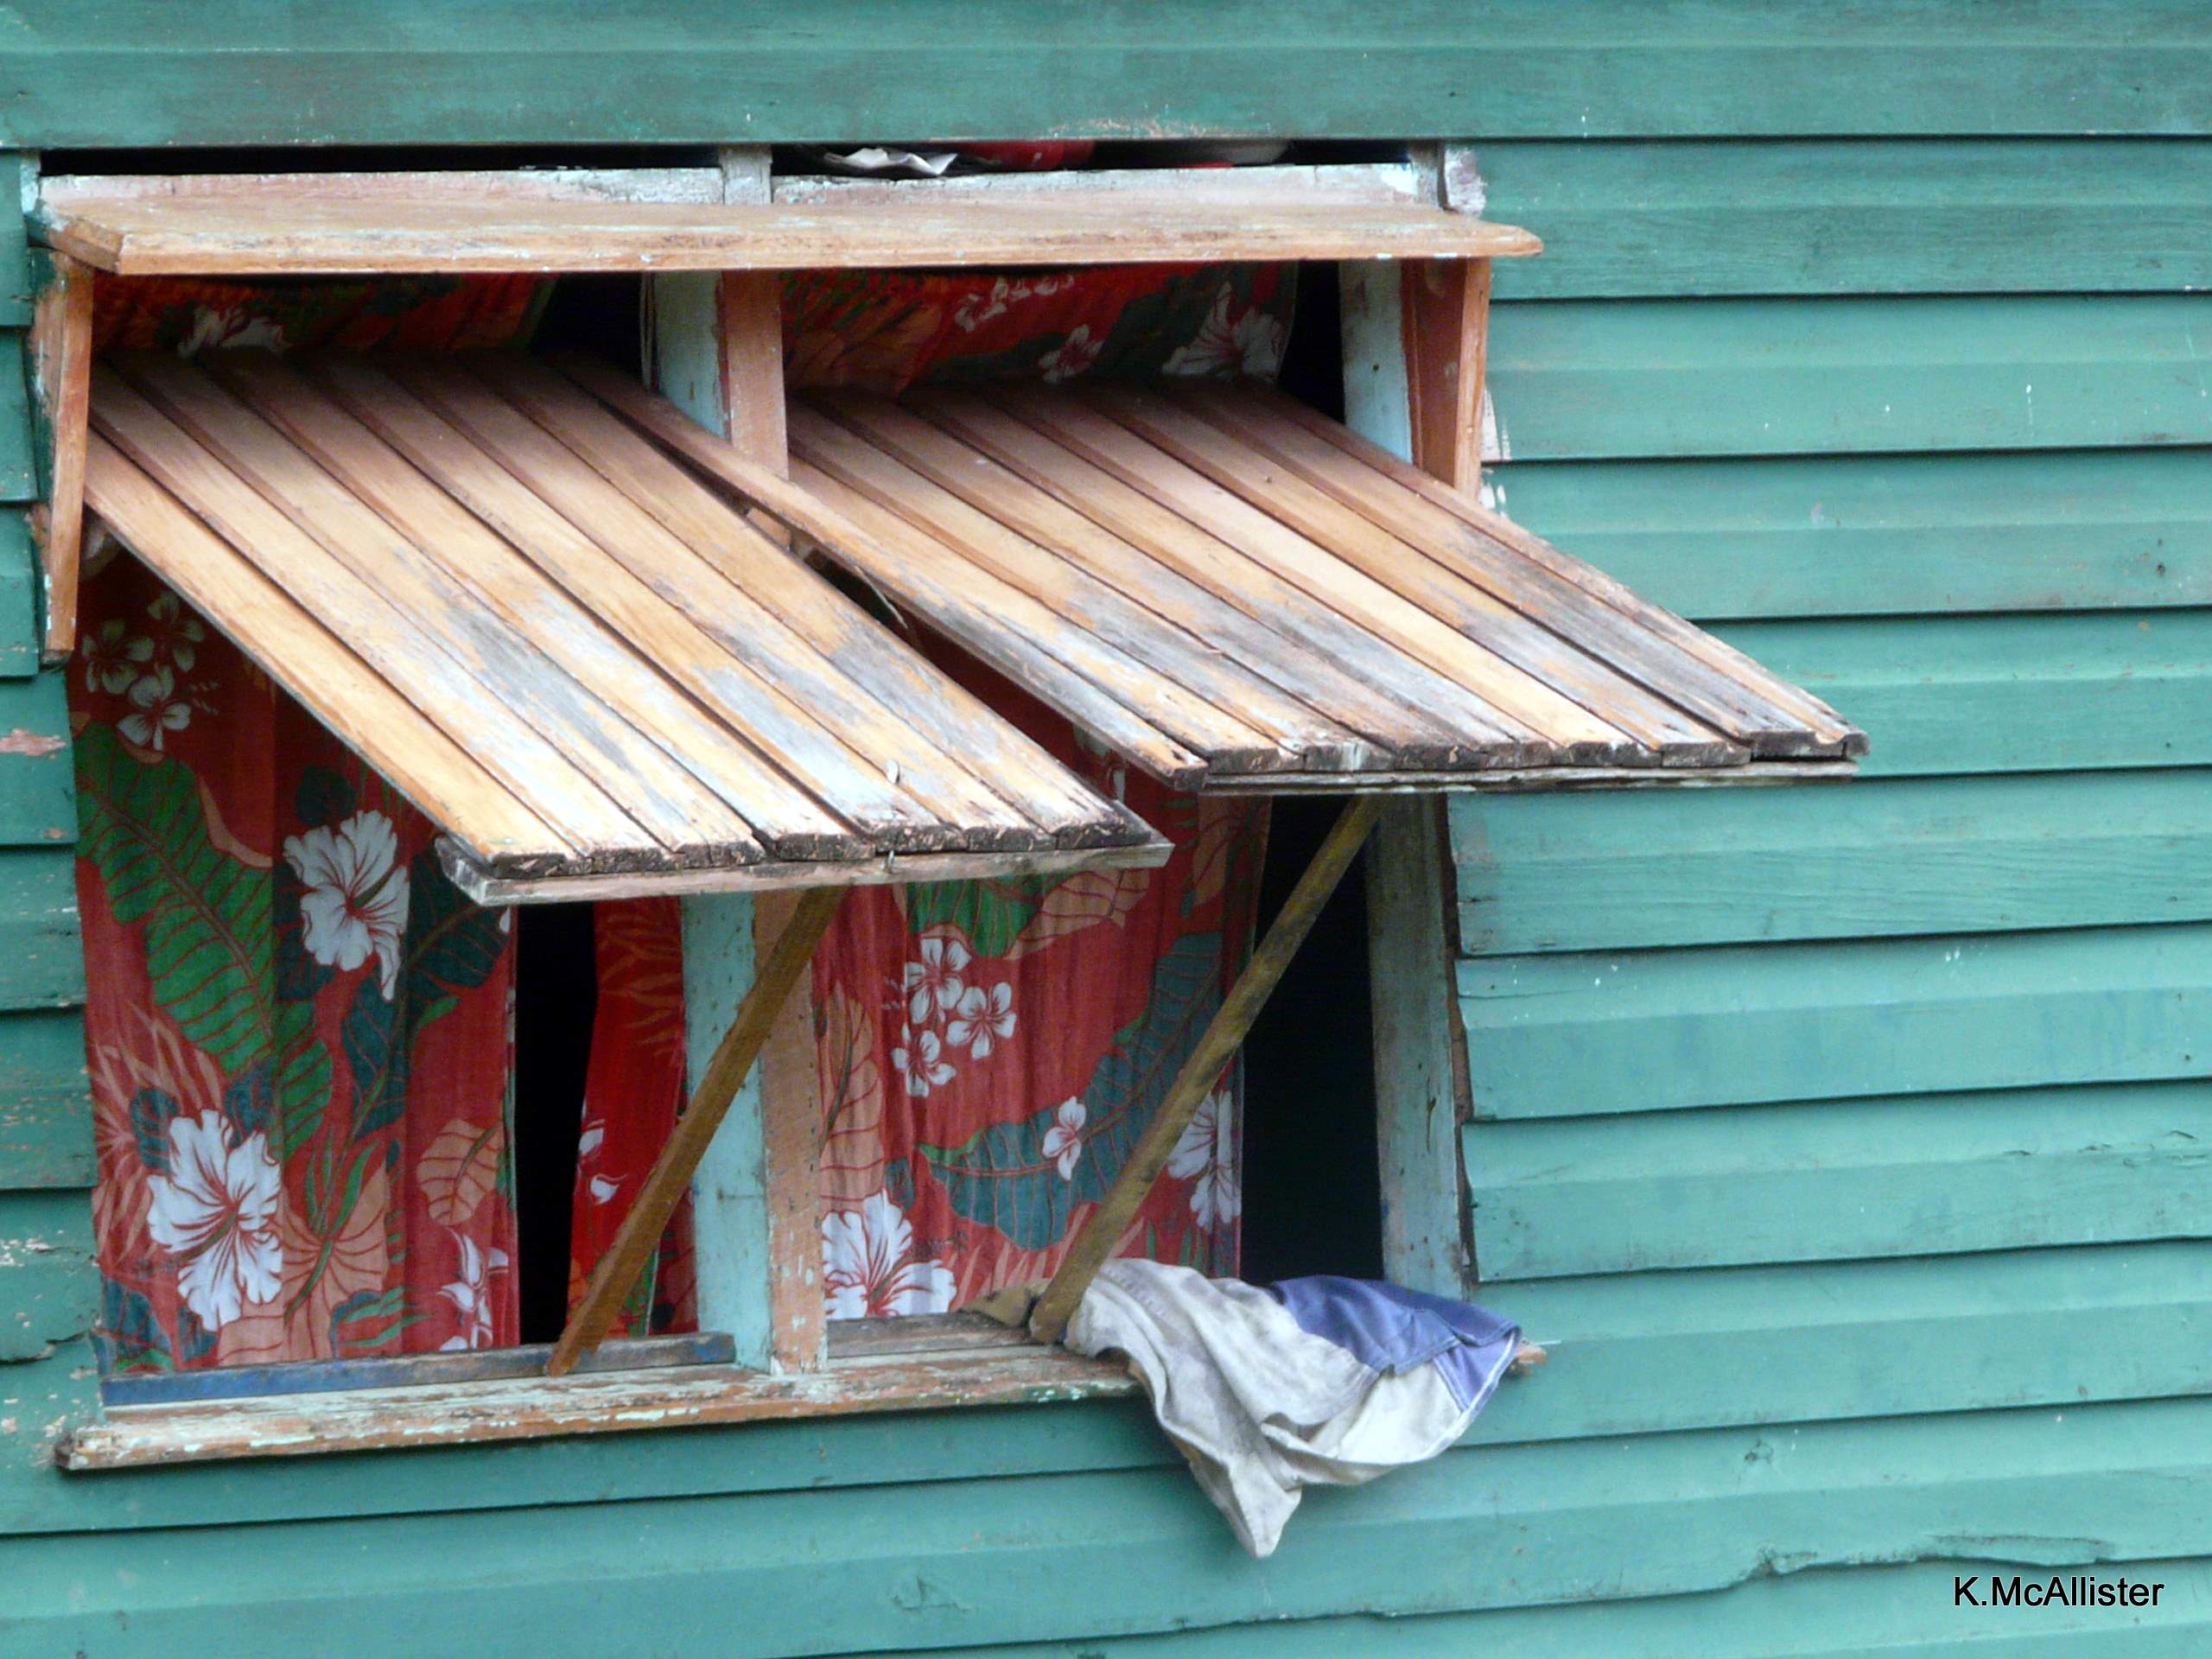 Window shutters open in a village in Savusavu, Fiji